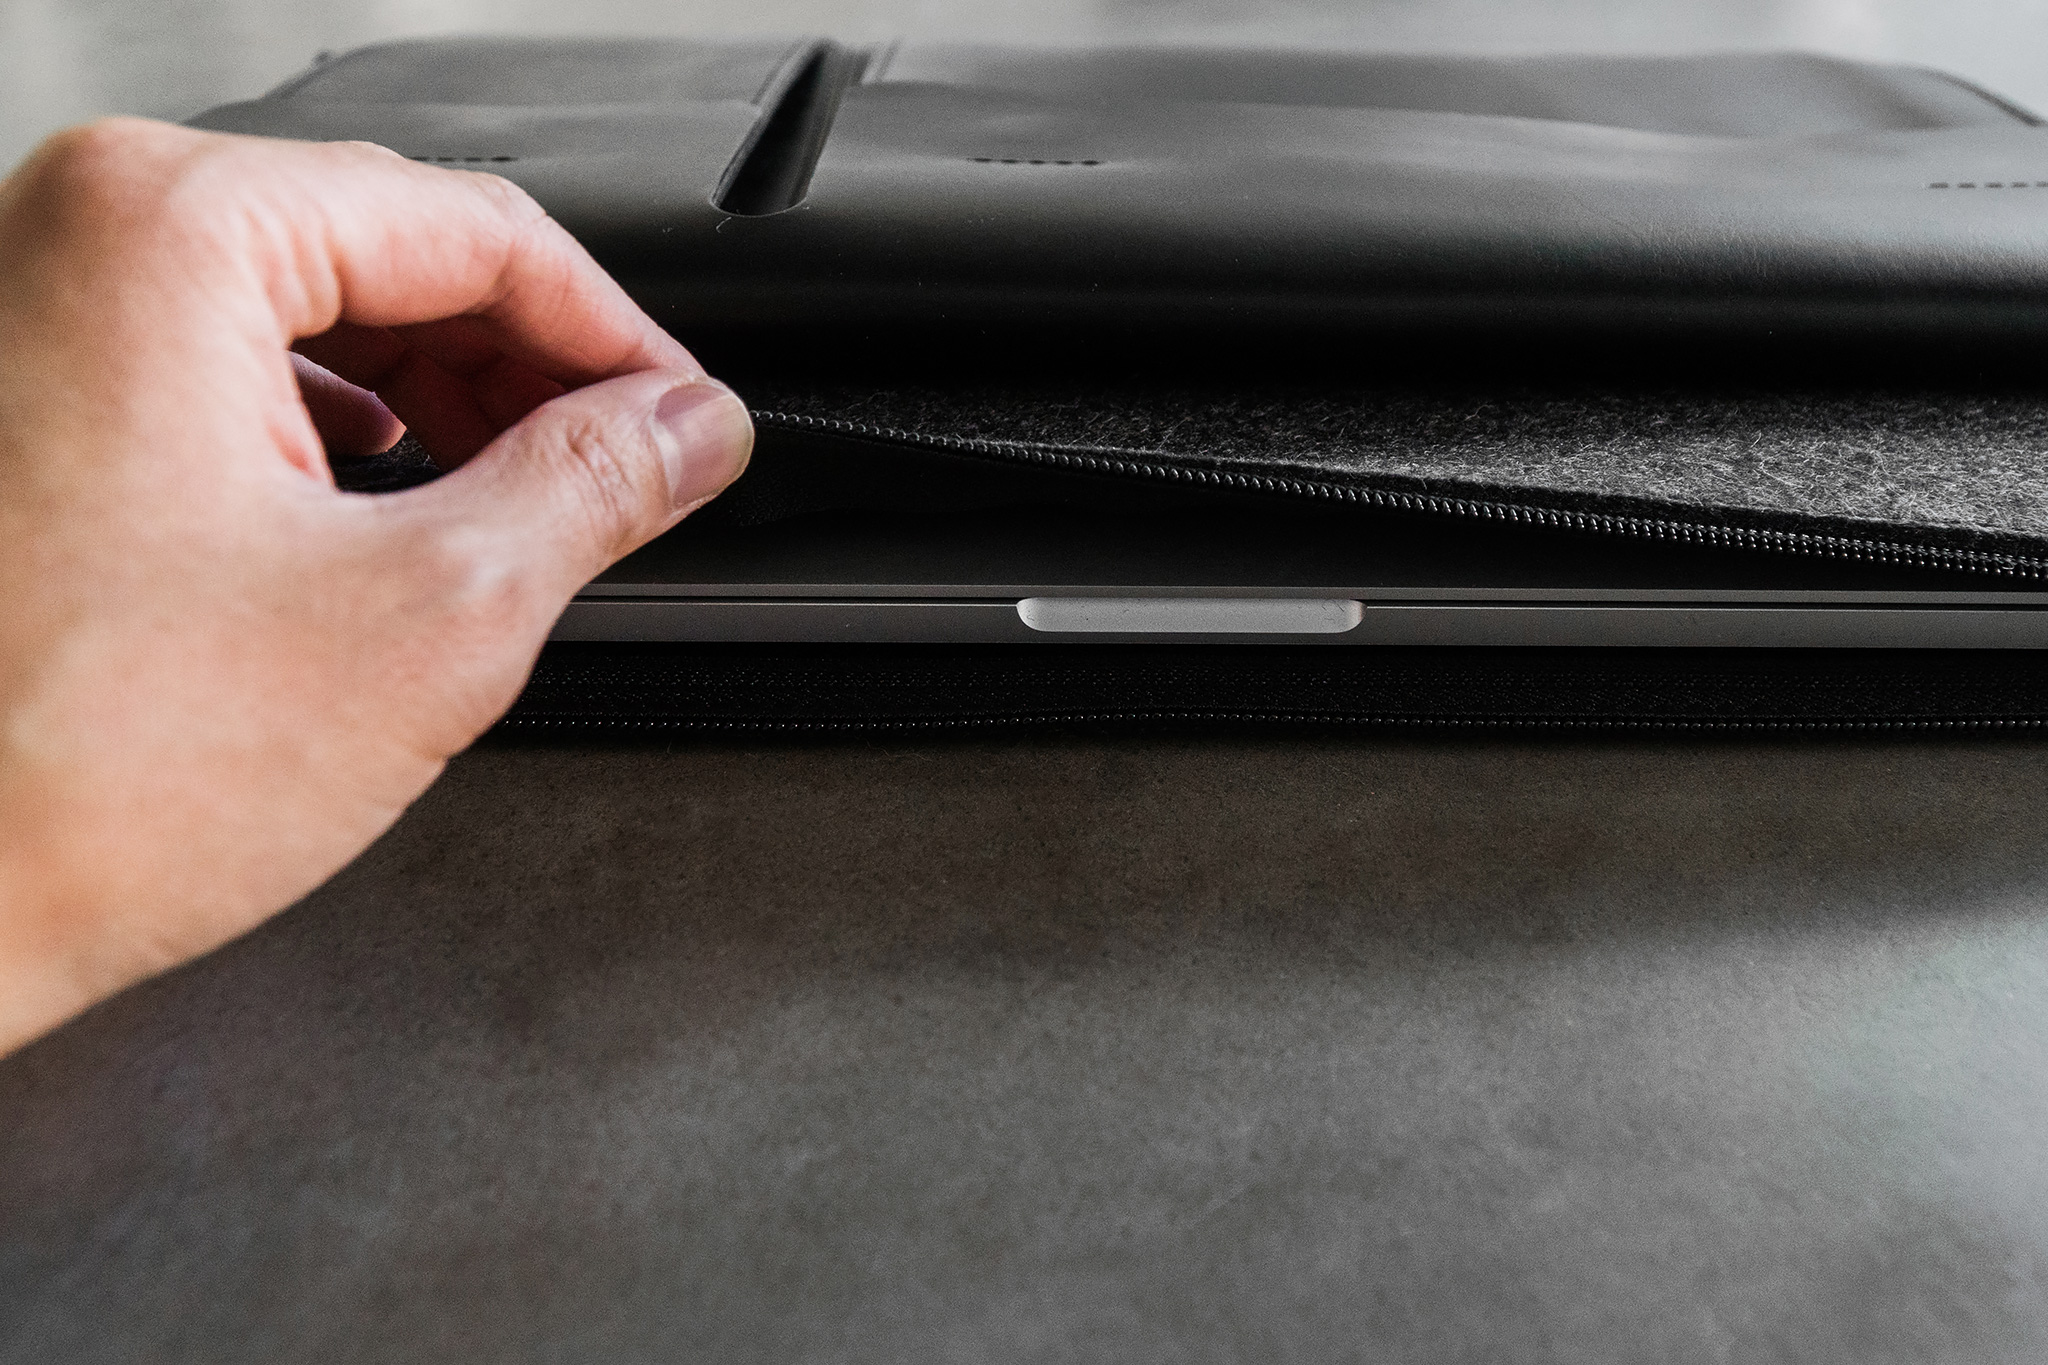 MacBook Pro Retina Sleeve Etsy Cinnamon Cocoon Review